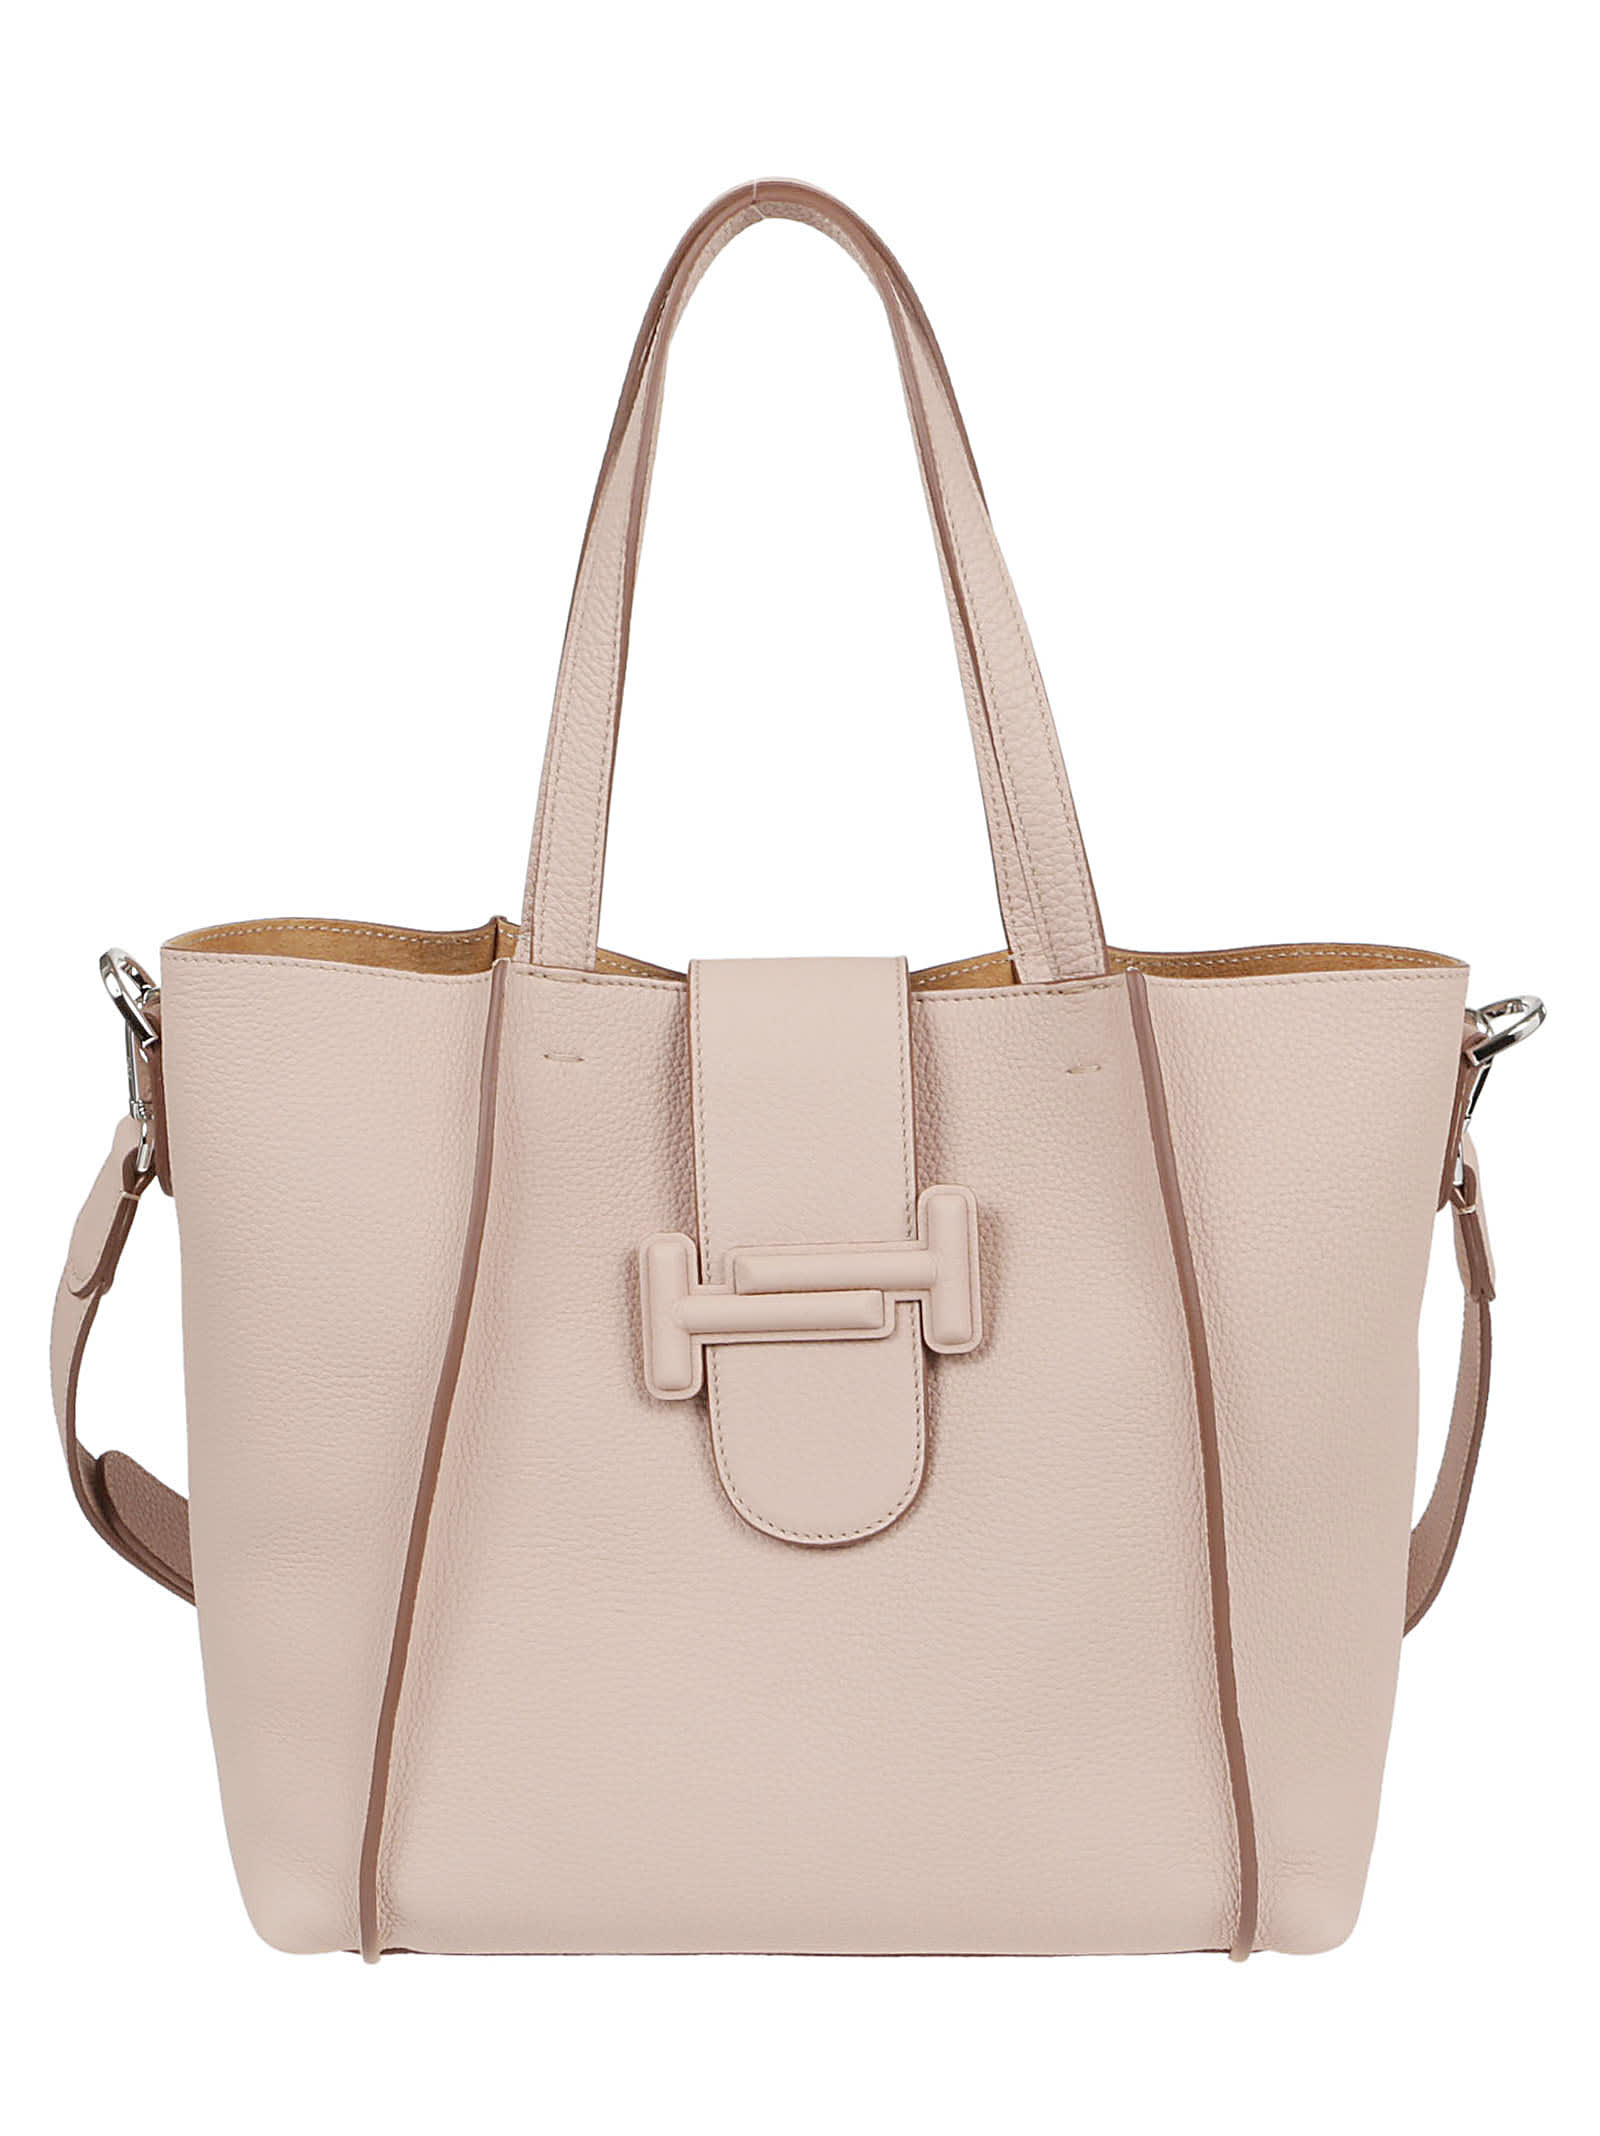 Tods Dox Shopping Small